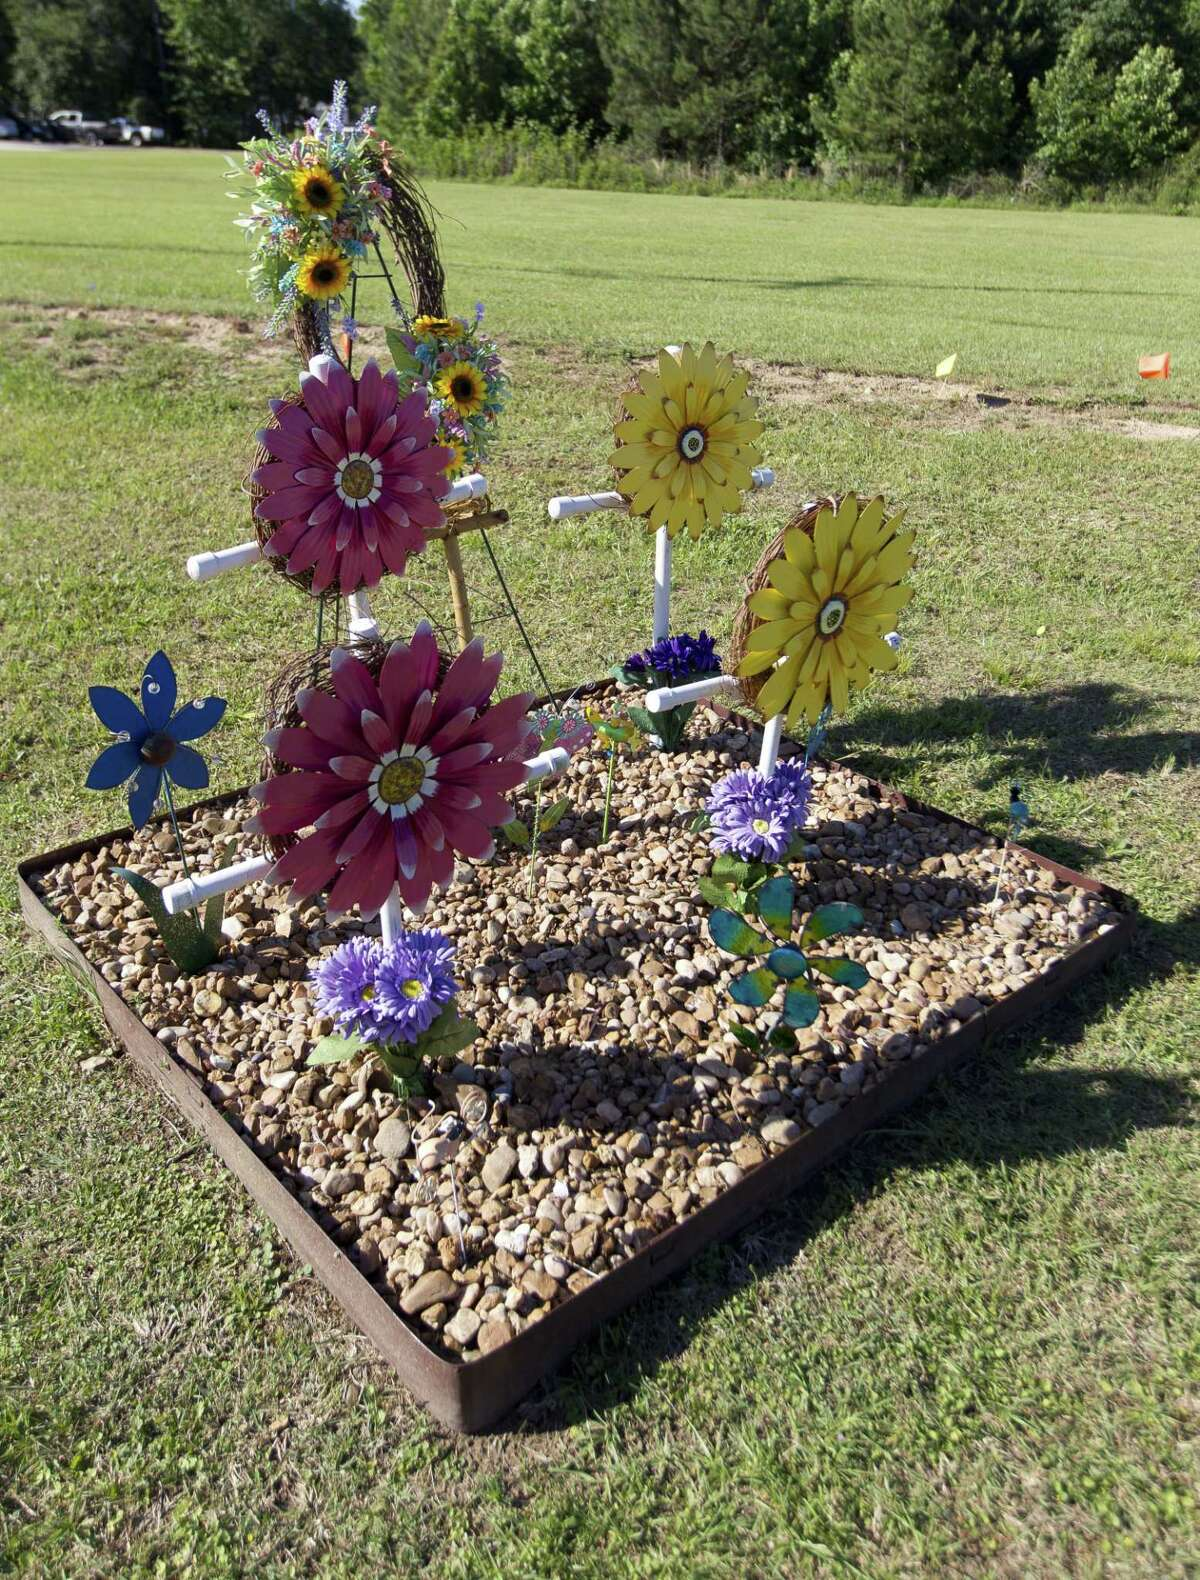 A memorial in honor of Roland Sedlmeier, his wife and his two children is seen near Marina Drive and Texas 105, Thursday, May 4, 2017, in Montgomery. The Sedlmeier family were killed after their vehicle was struck by Ronald Cooper, who was found guilty of driving high on prescription pills.